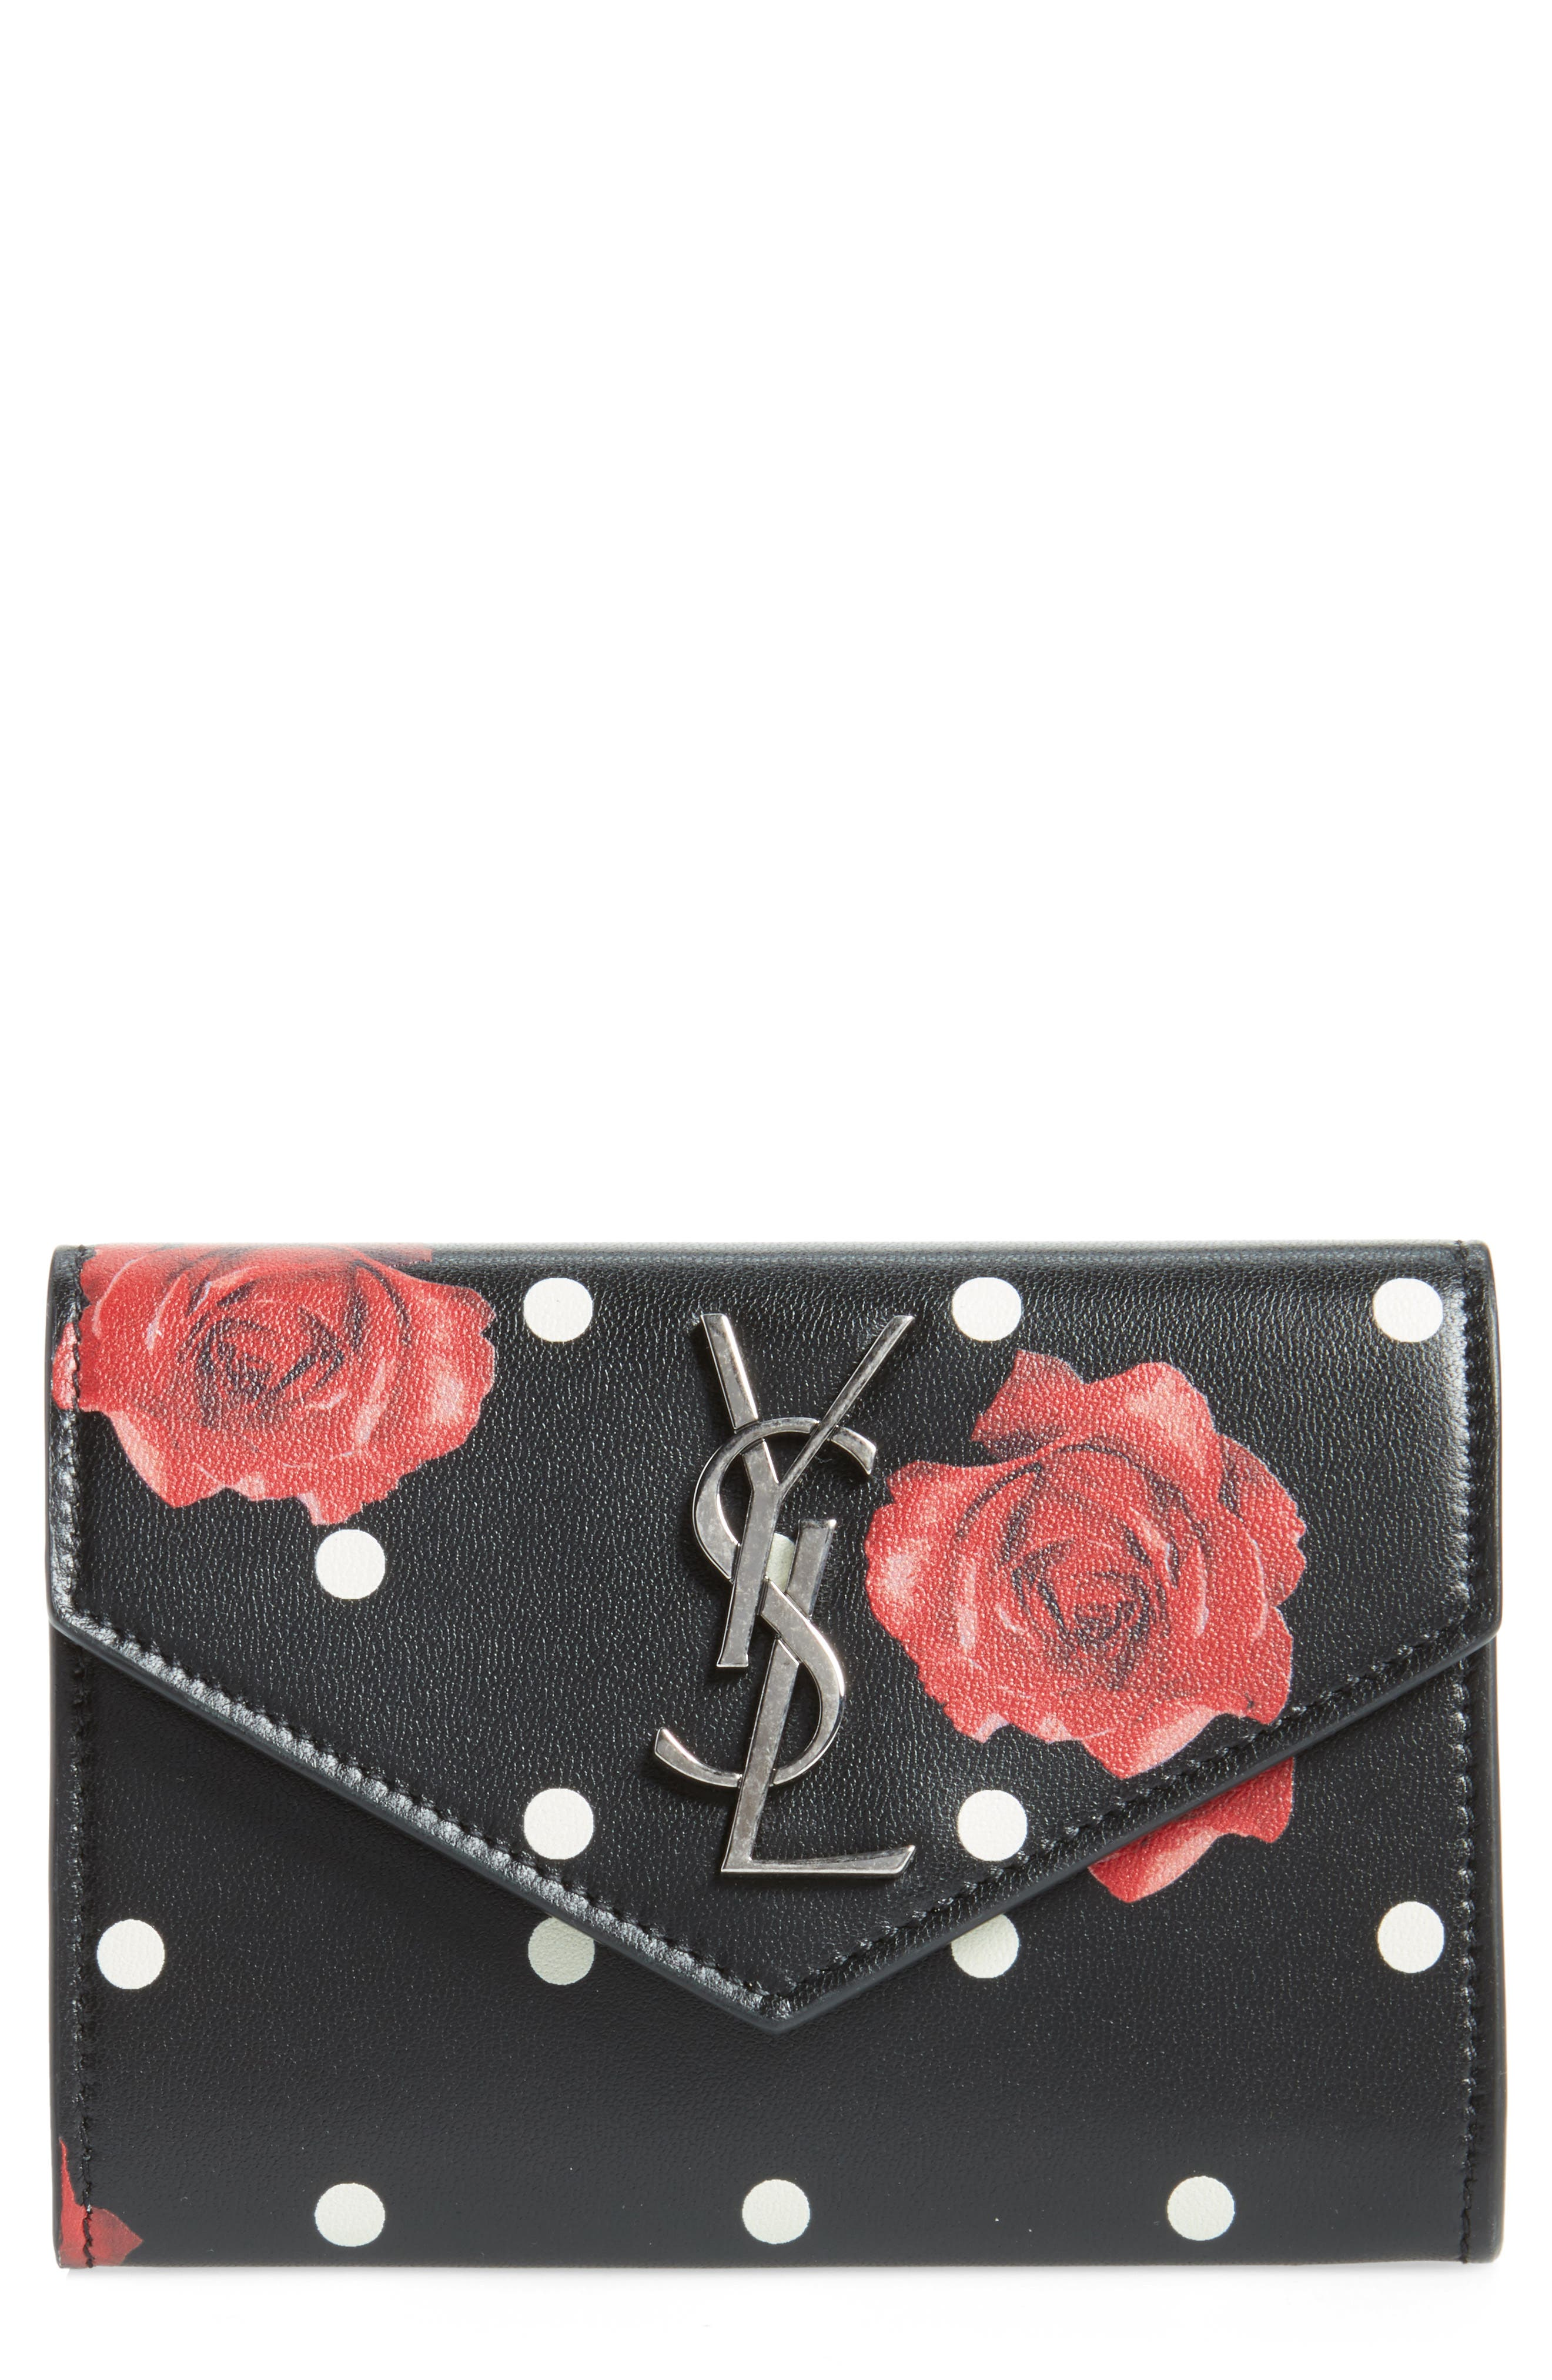 Rose & Polka Dot Small Leather French Wallet,                         Main,                         color, Black/ Multi